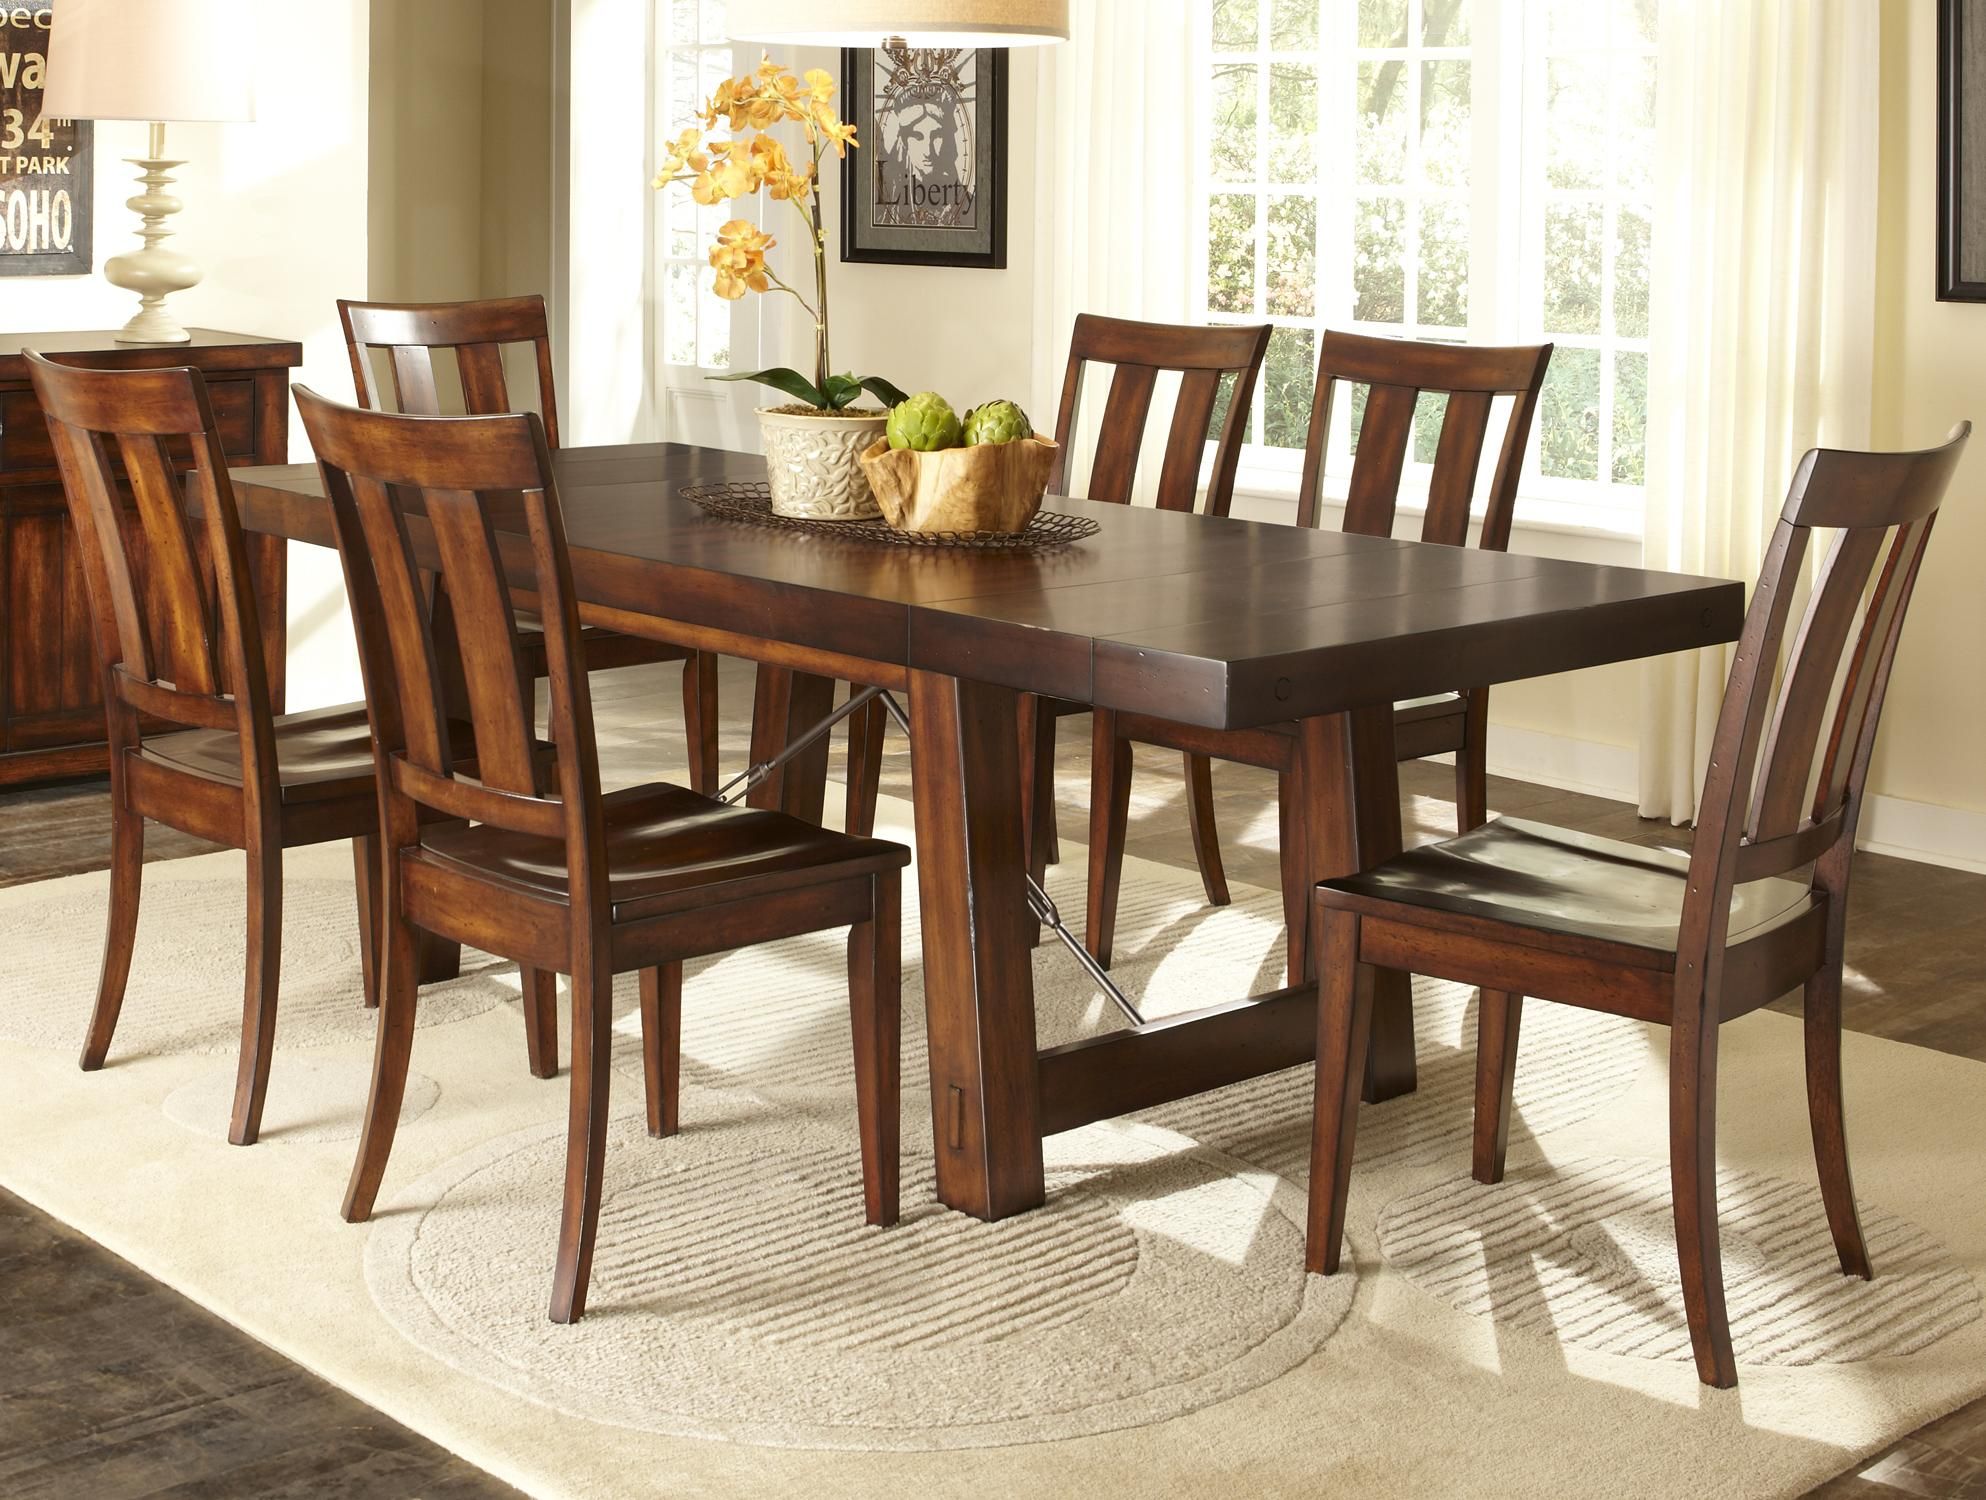 kitchen table chairs set Liberty Furniture Tahoe 7 Piece Dining Table Set Item Number CD